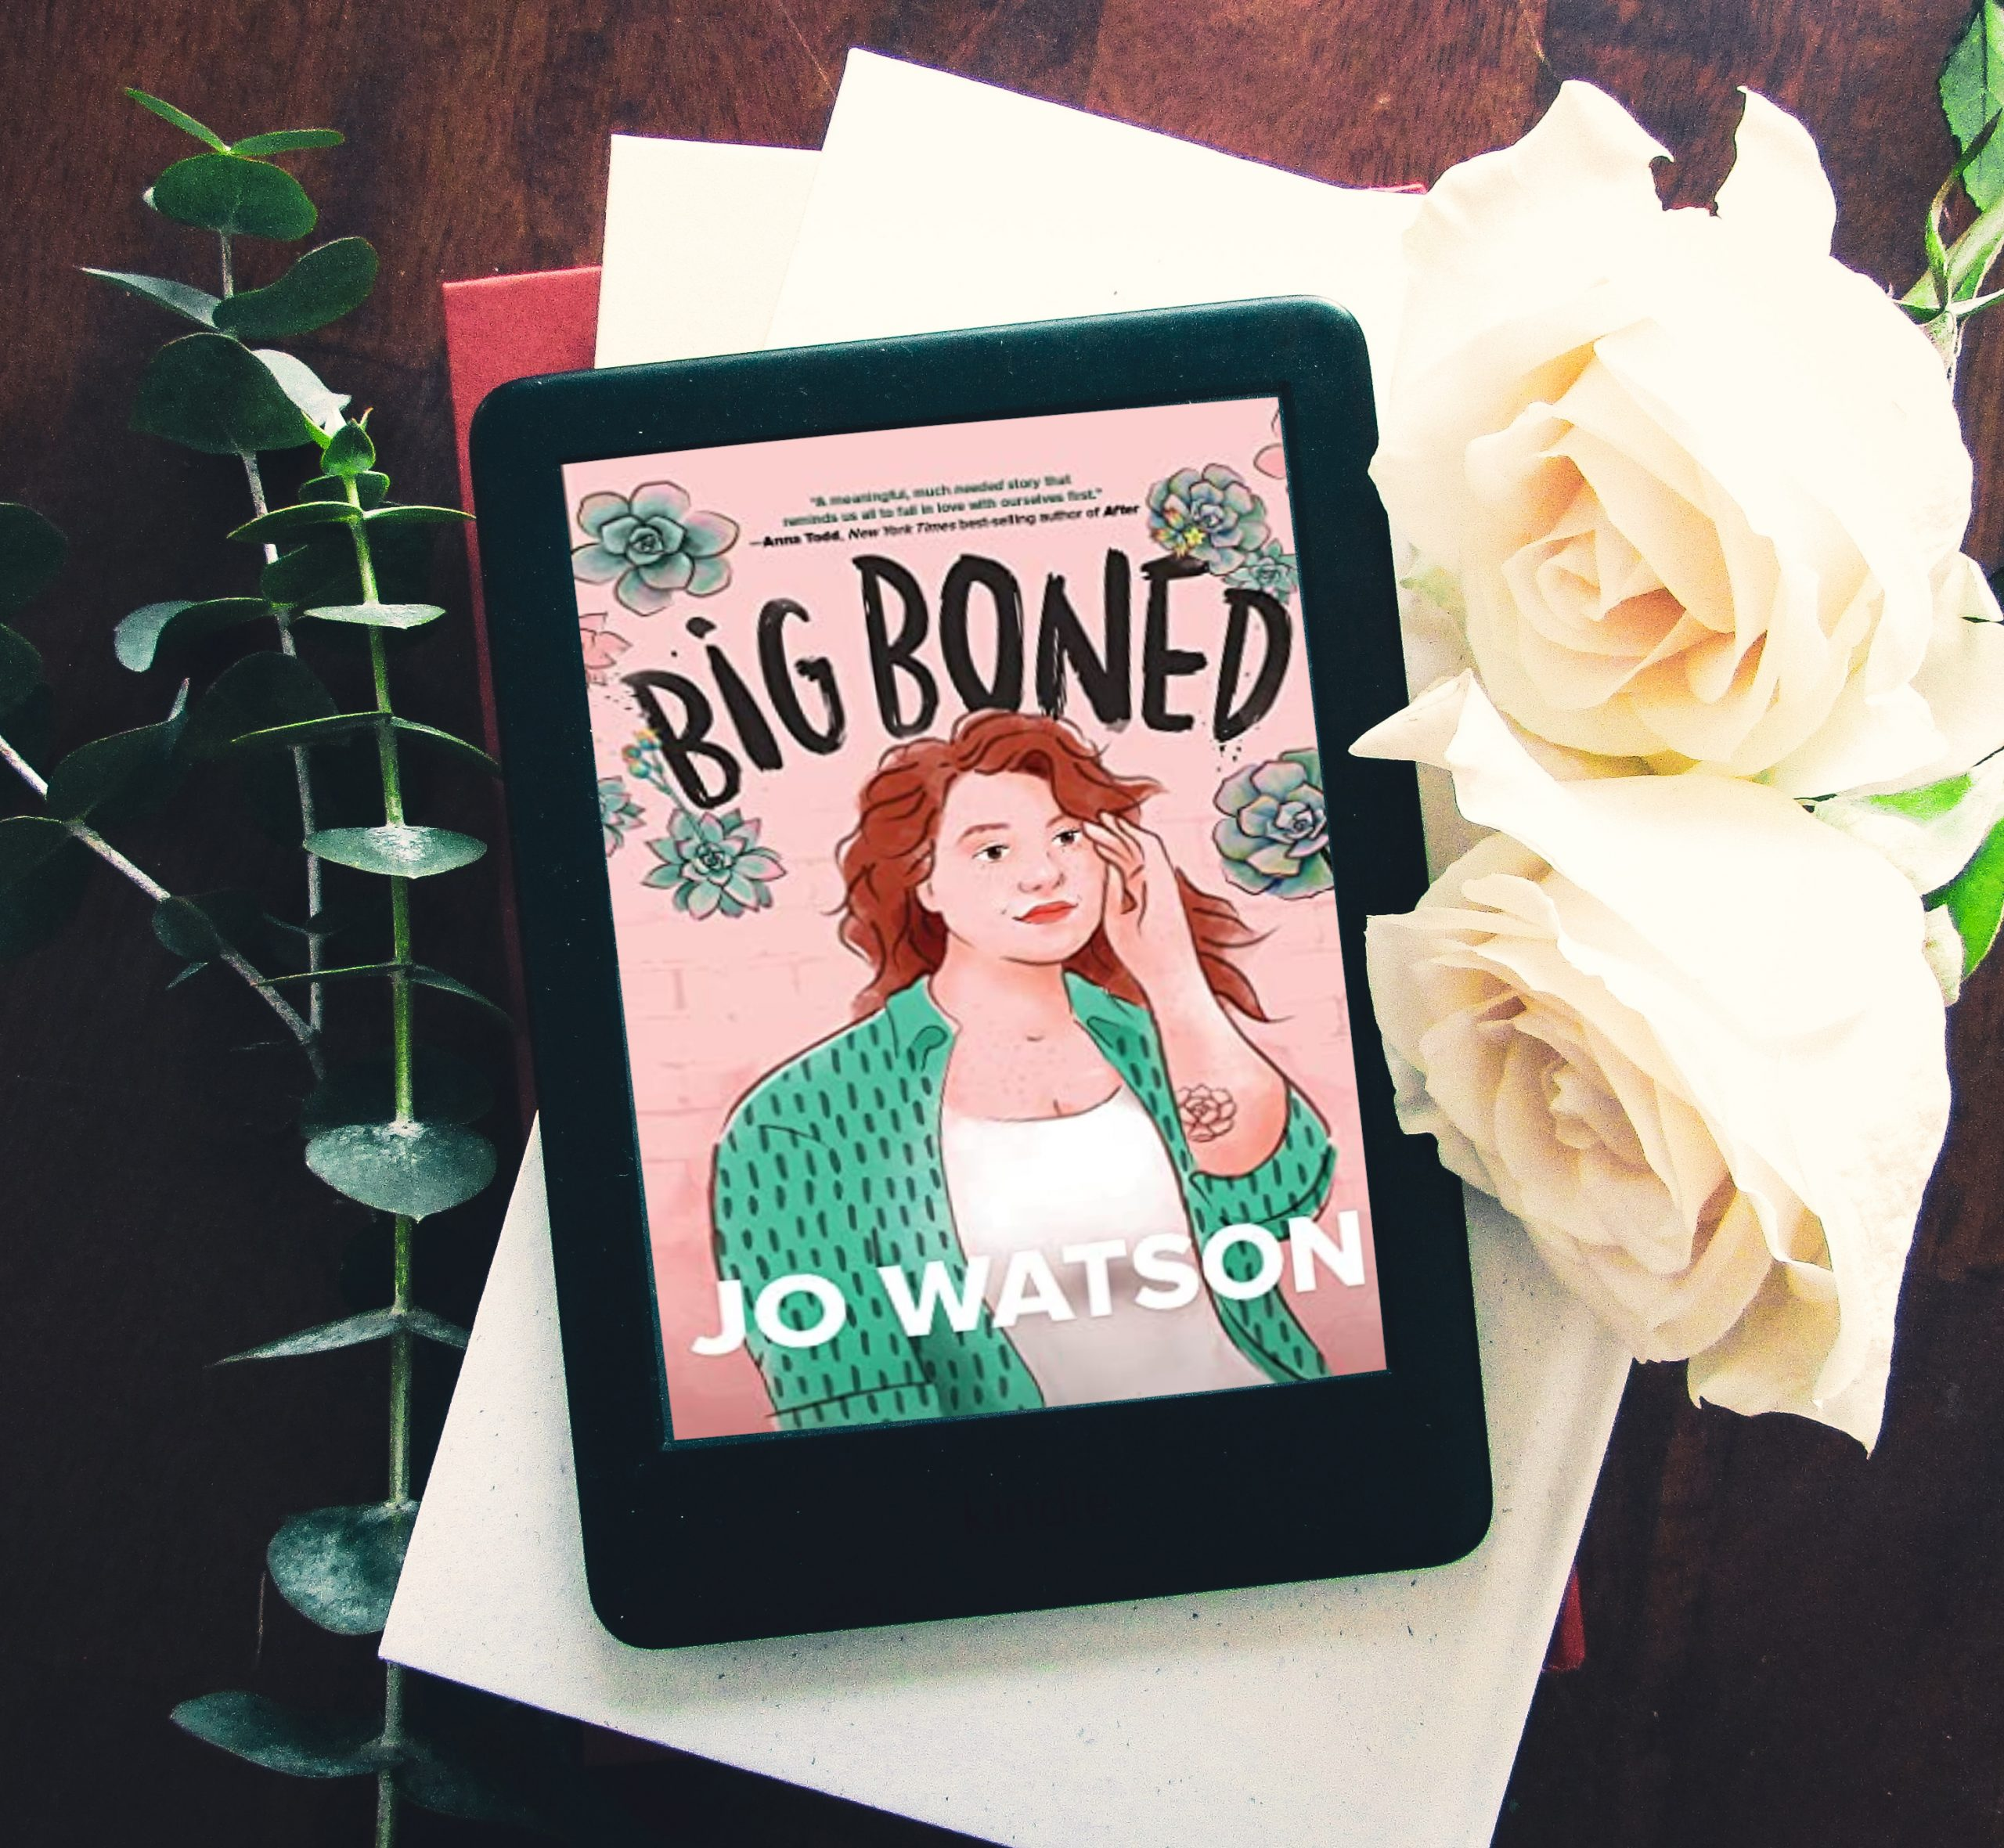 Big Boned by Jo Watson